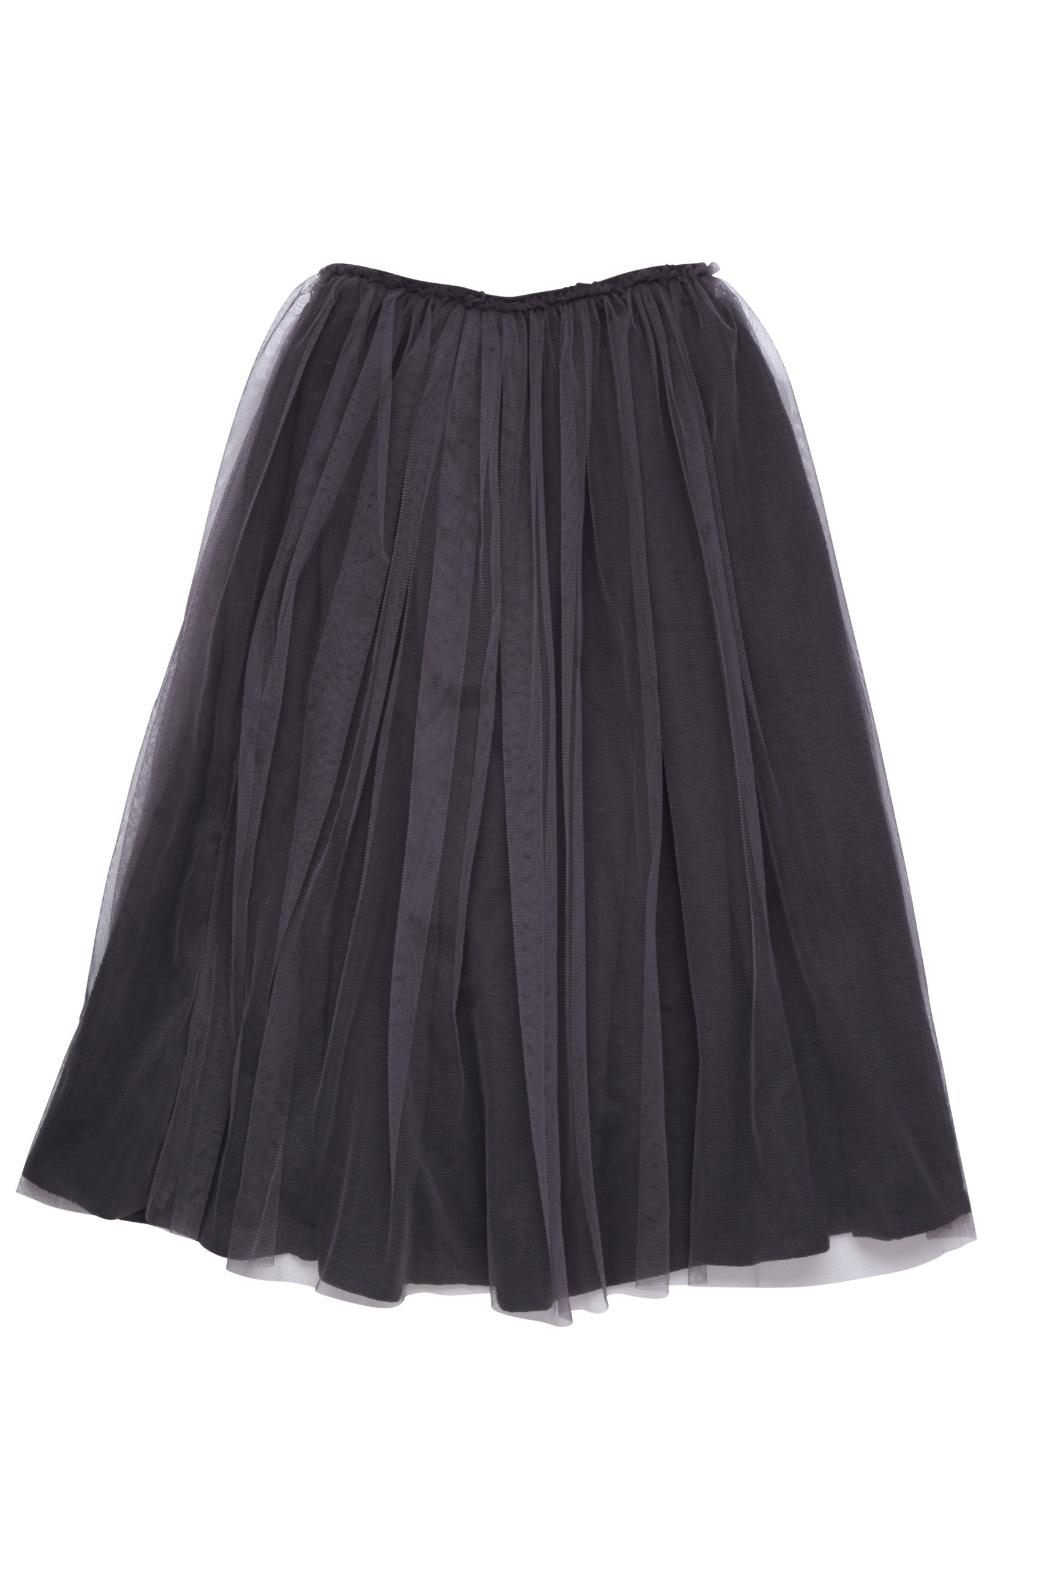 Rock Your Baby Black Tulle Skirt - Front Full Image